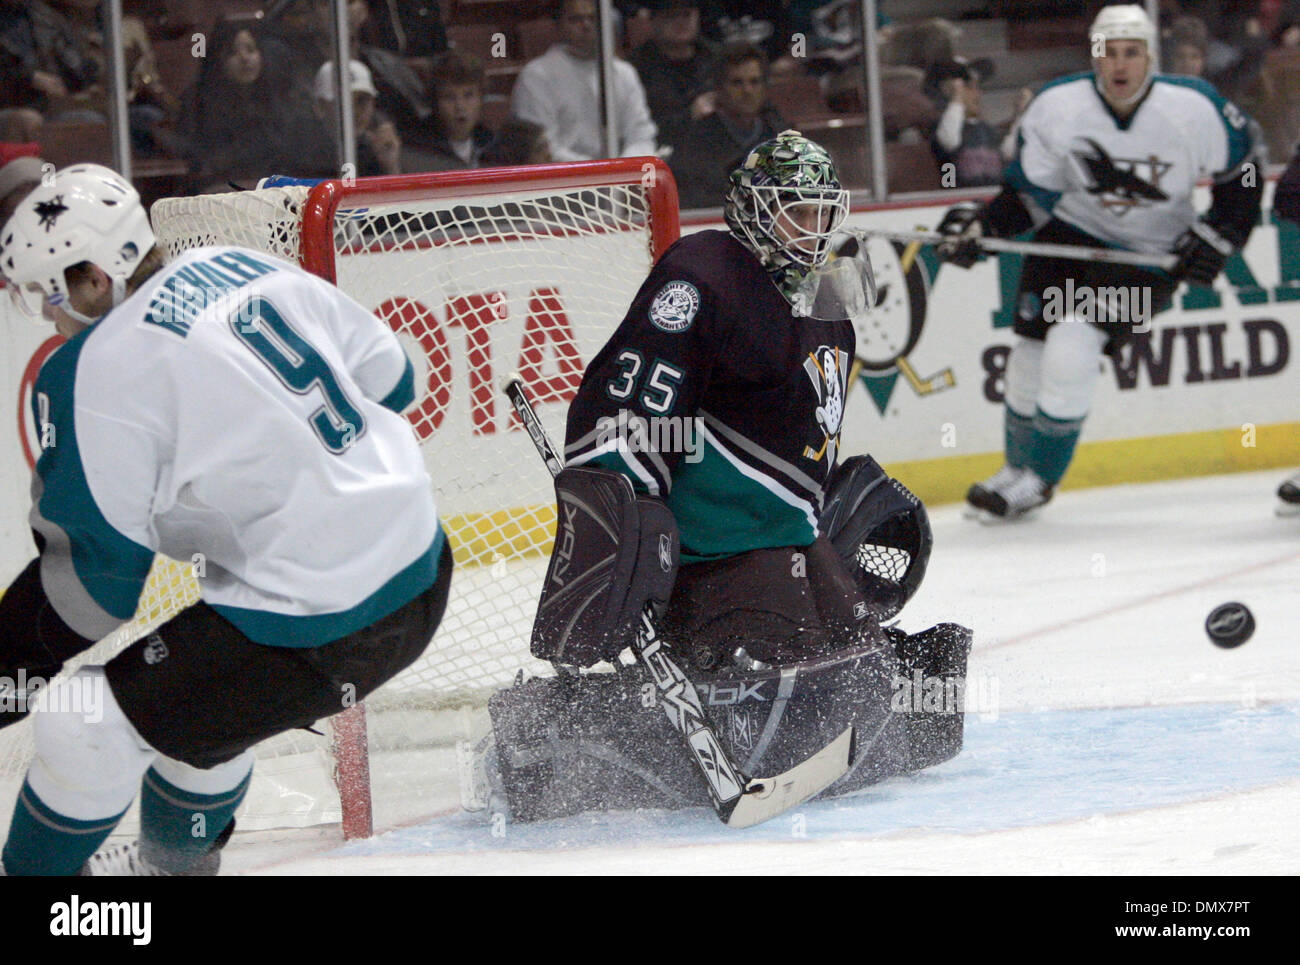 Dec 18, 2005; Anaheim, CA, USA; Mighty Ducks  goalie (35) Jean-Sebastian Giguere (R) makes a save against the San Jose Sharks (9) Milan Michalek  during the first period of their game at the ArrowHead Pound in Anaheim , California. Mandatory Credit: Photo by Armando Arorizo/ZUMA Press. (©) Copyright 2005 by Armando Arorizo - Stock Image